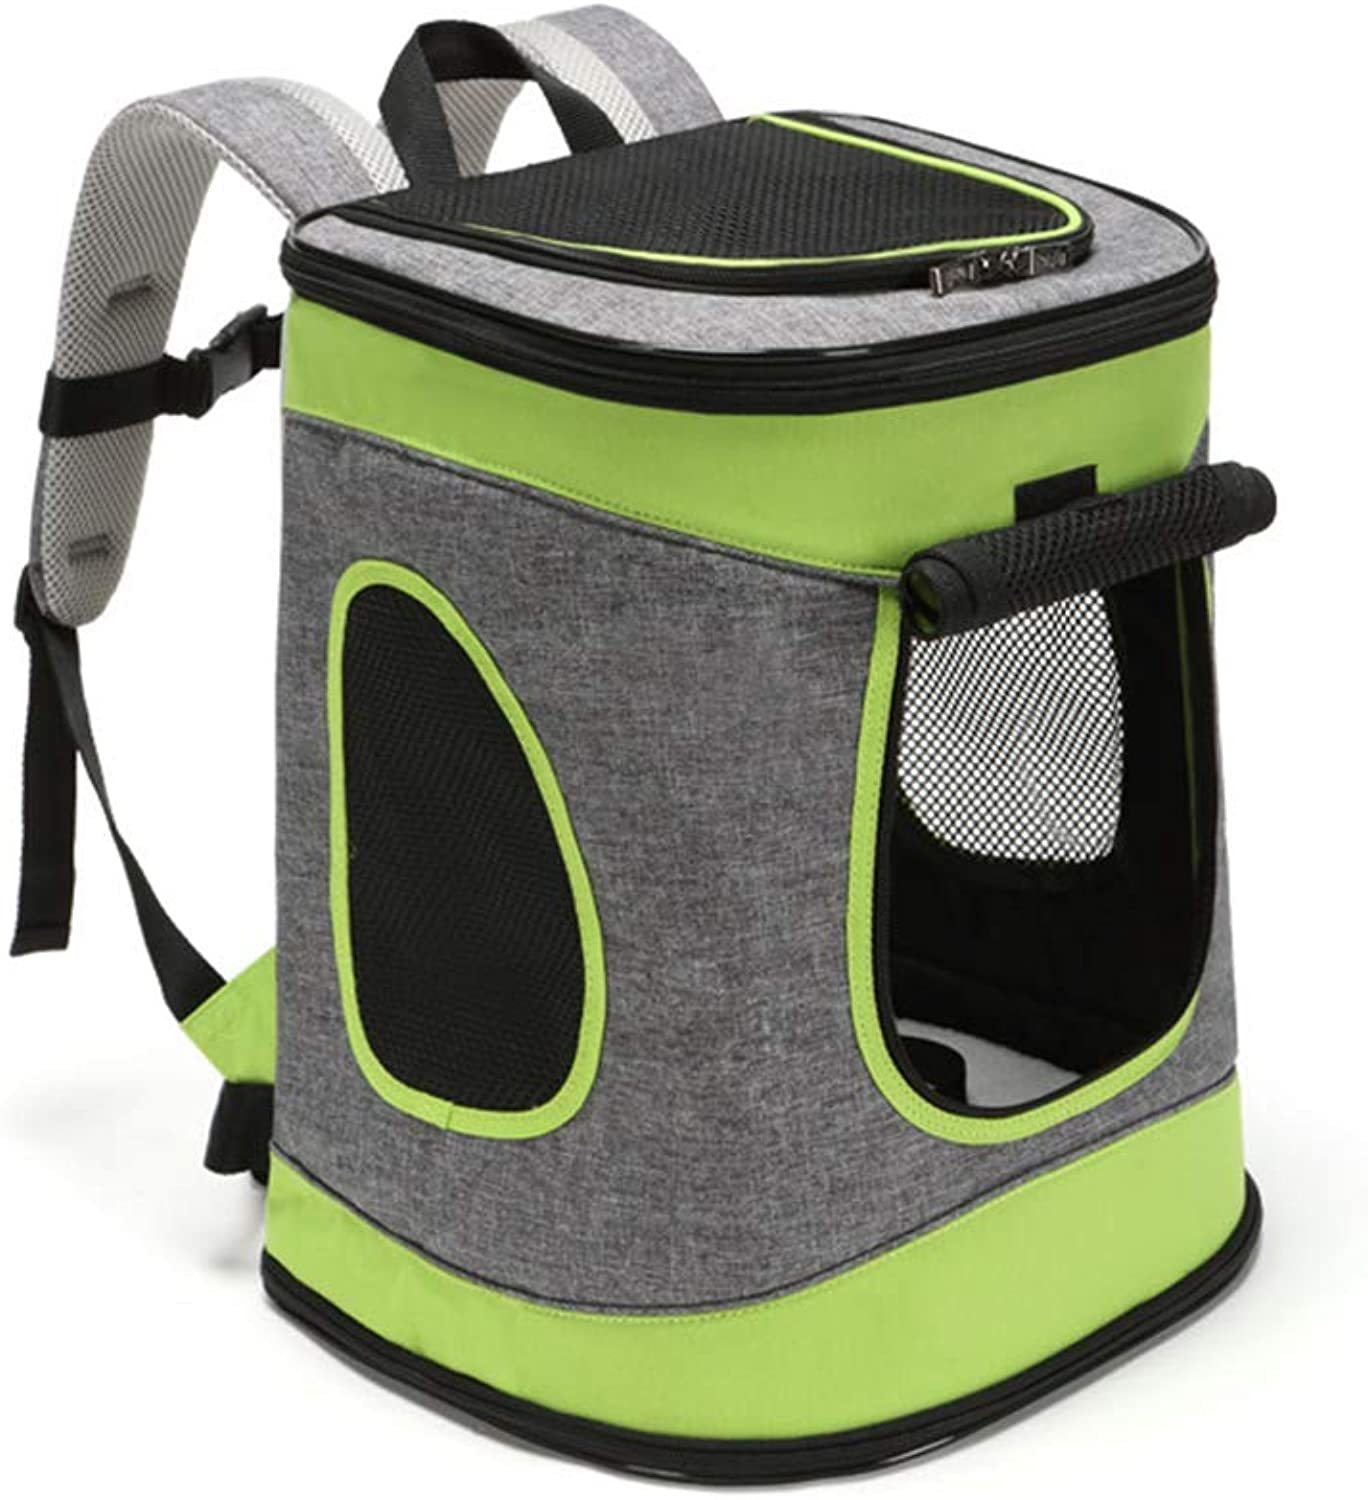 Breathable Shockproof Stress reliever pet Dog Backpack Stereoscopic Breathe Waterproof Safety buckle Portable Dog bag Backpack